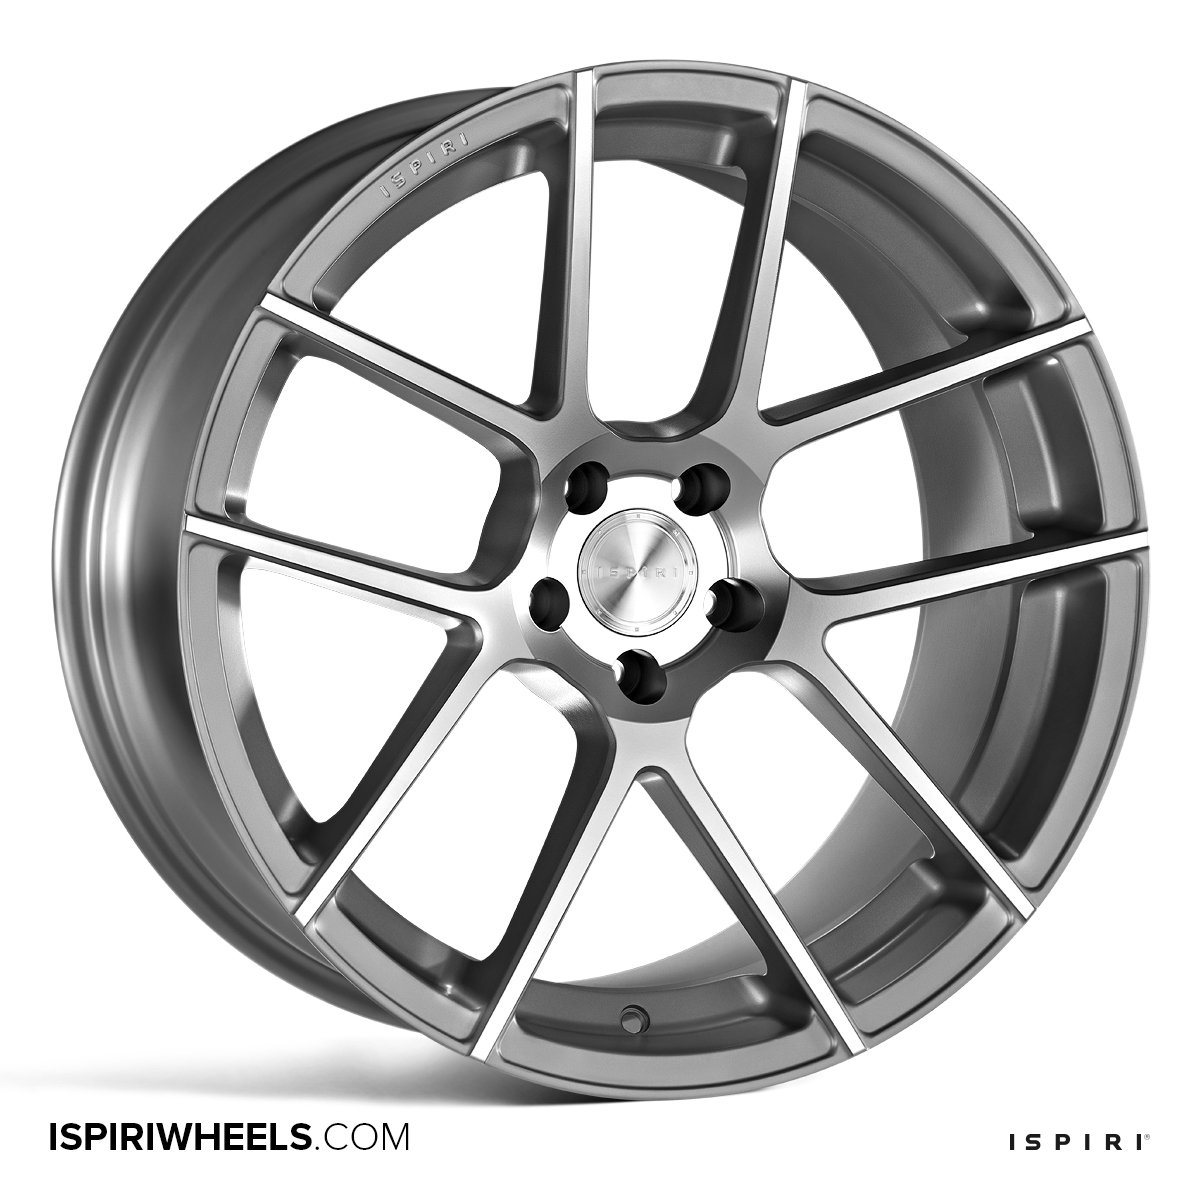 "NEW 19"" ISPIRI ISR6 ALLOY WHEELS IN SATIN SILVER/SATIN POL WITH DEEPER CONCAVE 9.5"" REARS,VARIOUS REAR OFFSETS"